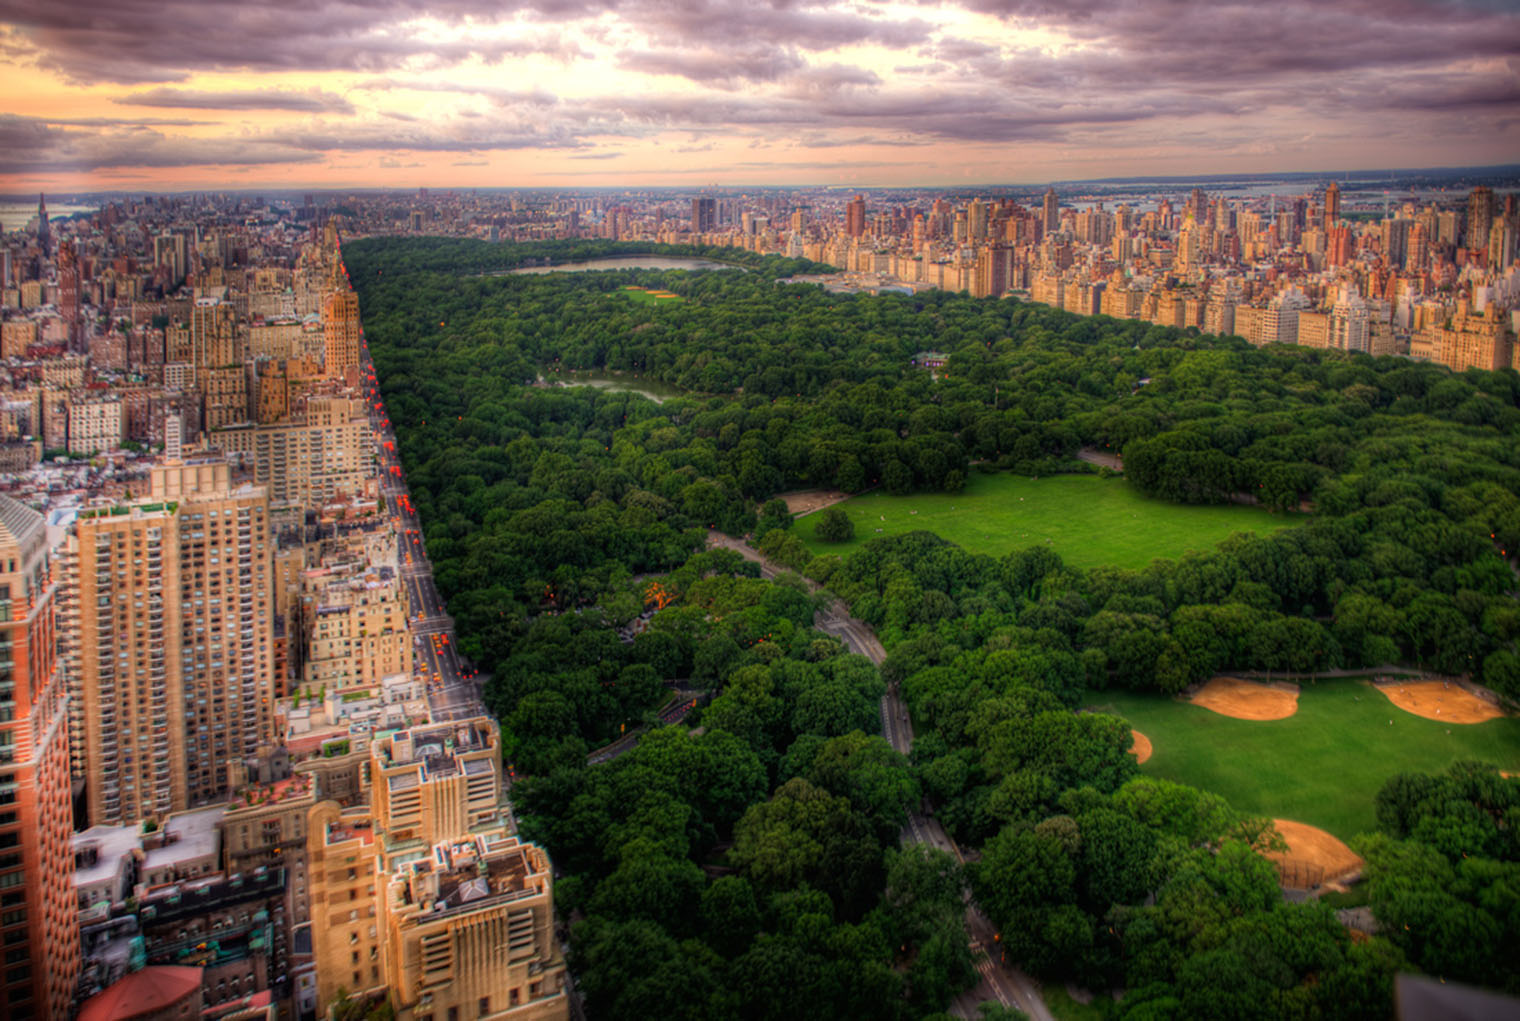 a description of the central park in new york city Today's guests are invited to escape the busy city life in exchange for the serenity that awaits them at the park central hotel near rockefeller center - newly renovated and inspired by the iconic central park and renowned new york city landmarks.